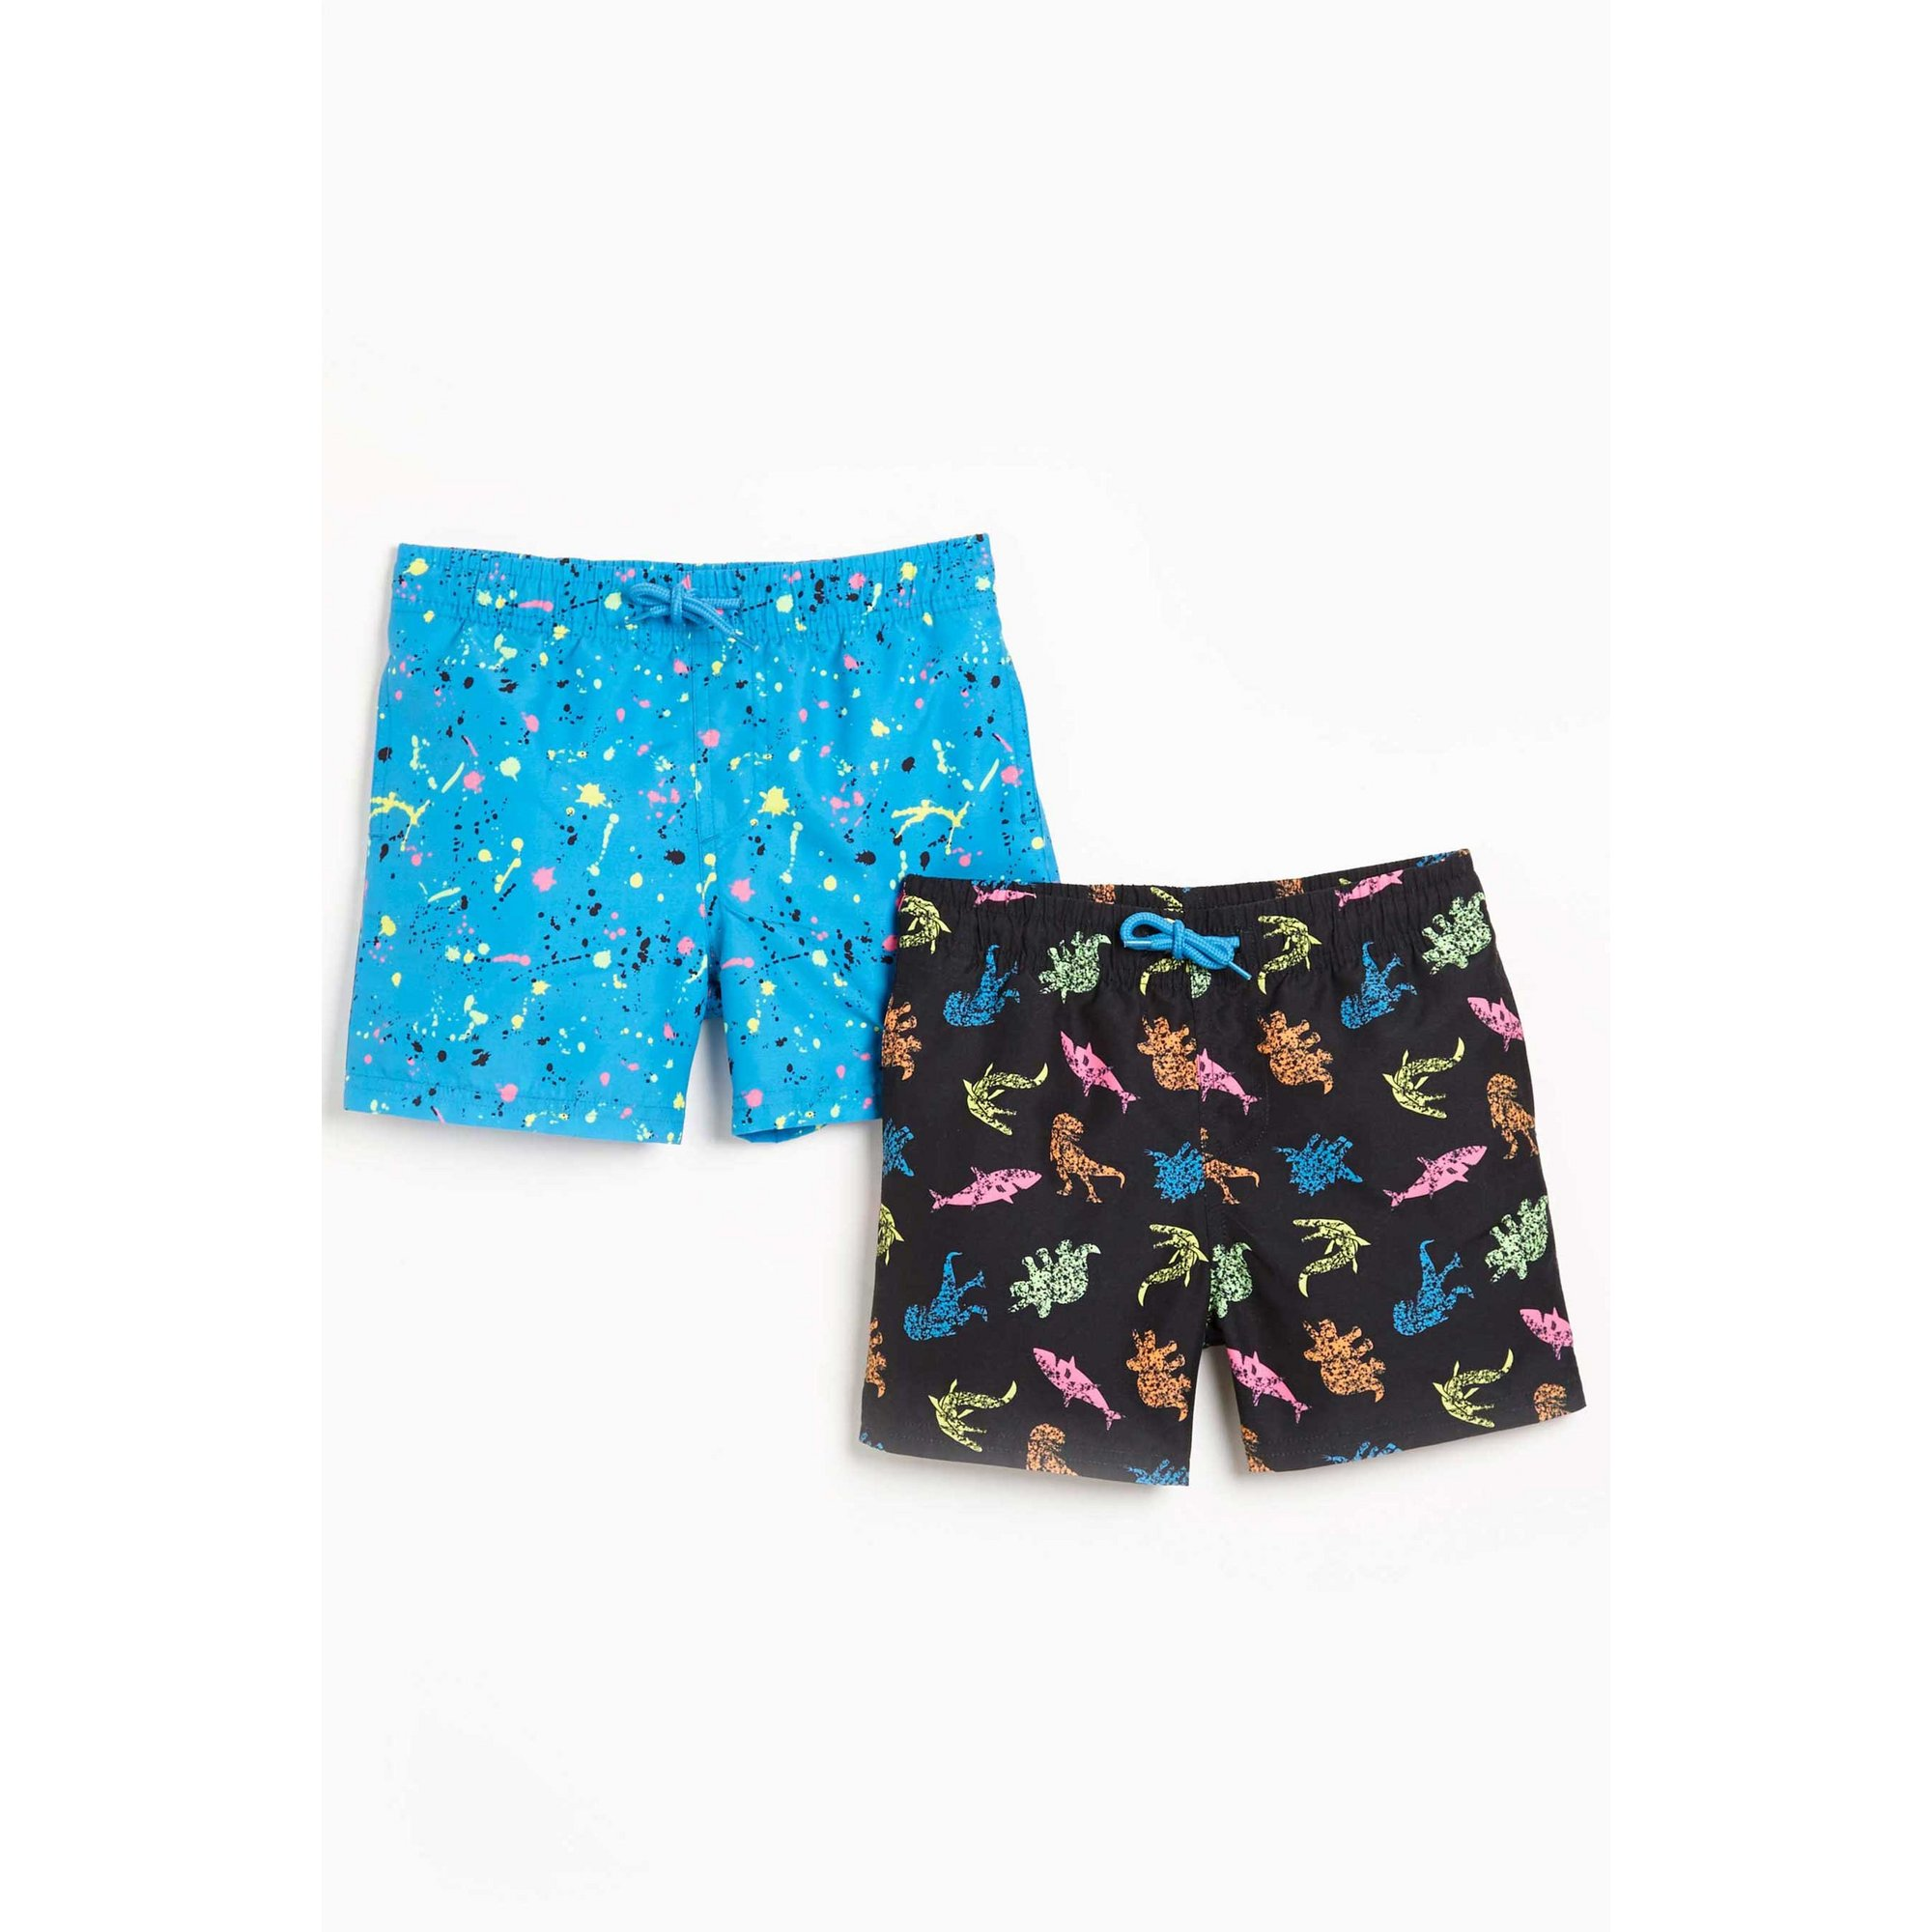 Image of Younger Boys Pack of 2 Dino Shark Swim Shorts